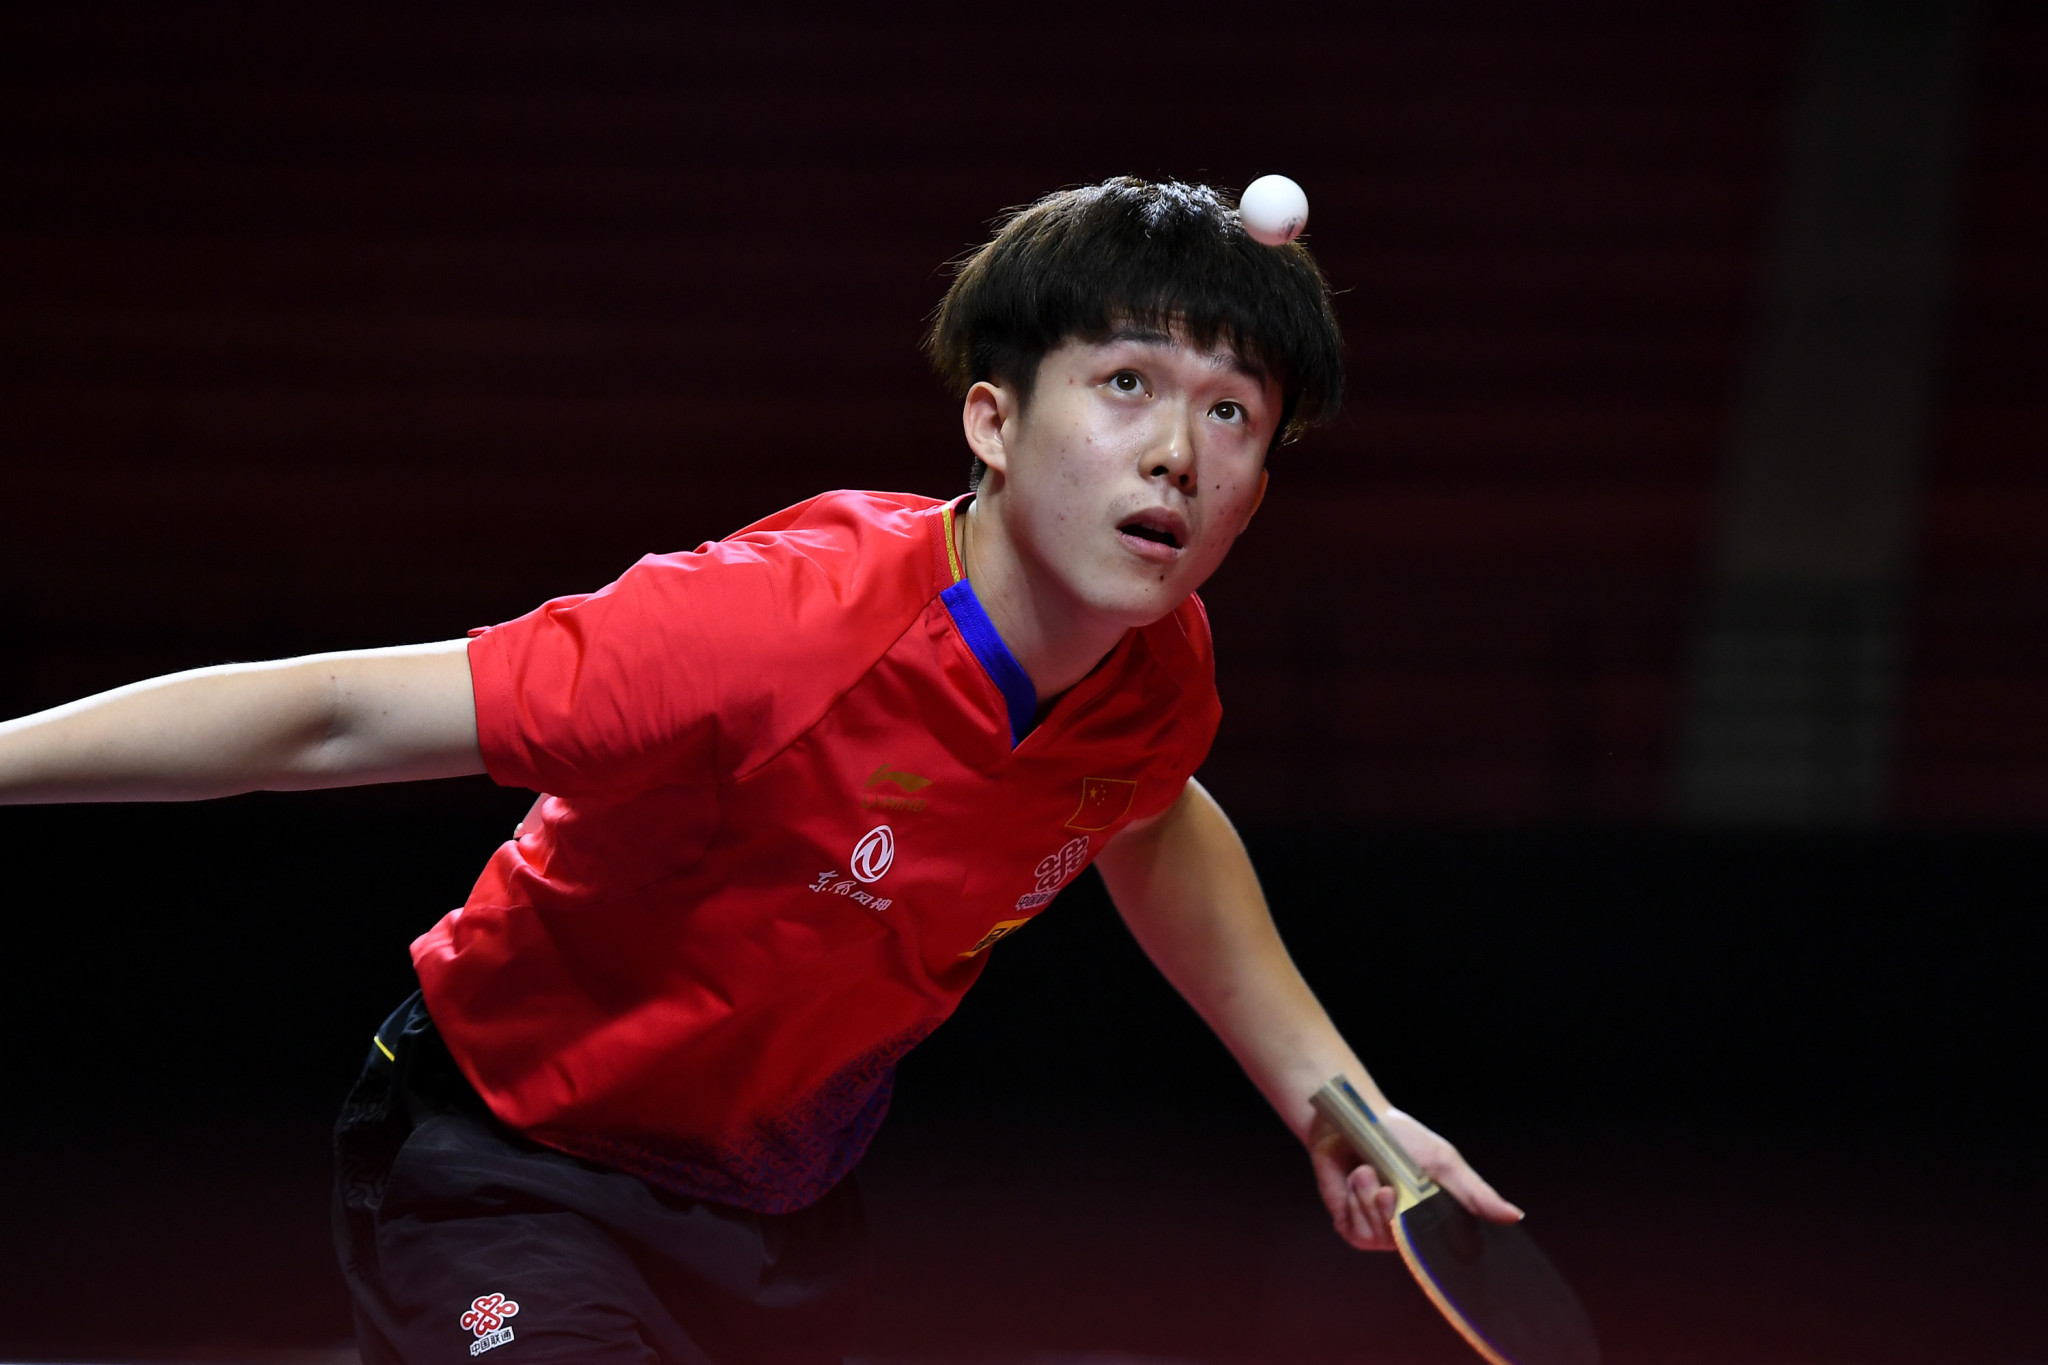 Wang Chuqin arrives in Bremen having clinched his maiden ITTF World Tour title at the Swedish Open ©Getty Images